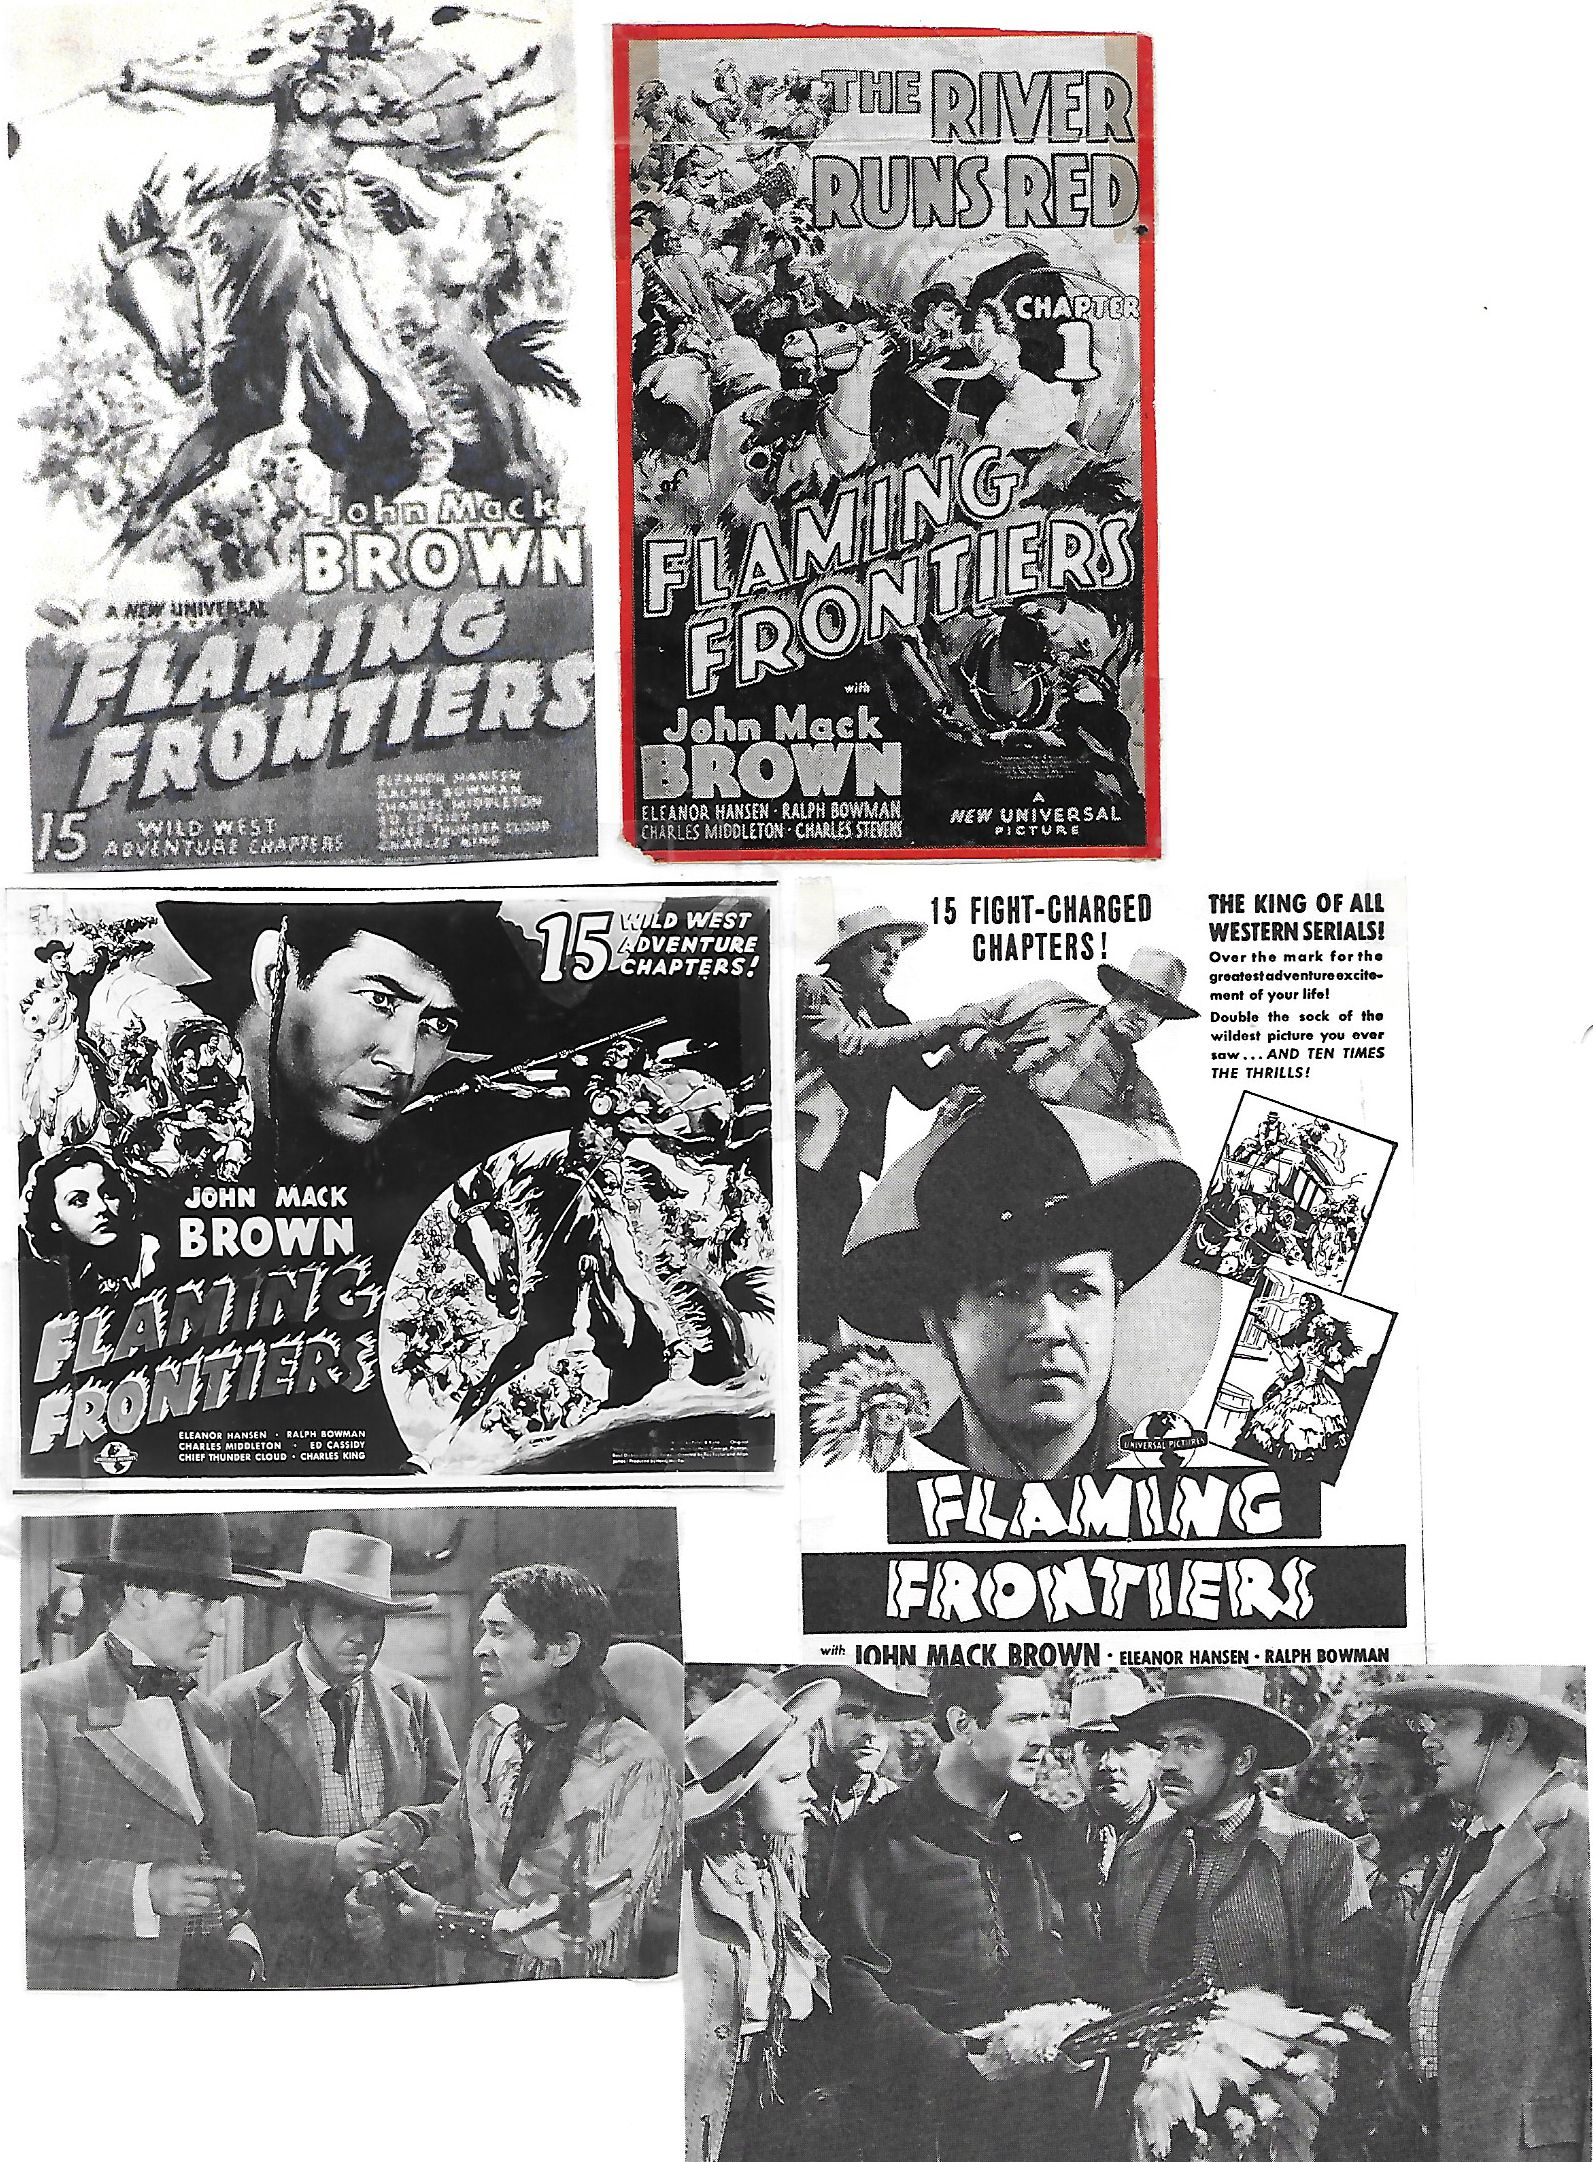 James Blaine, Johnny Mack Brown, Ed Cassidy, Eleanor Hansen, Charles Middleton, William Royle, Tom Steele, and Charles Stevens in Flaming Frontiers (1938)